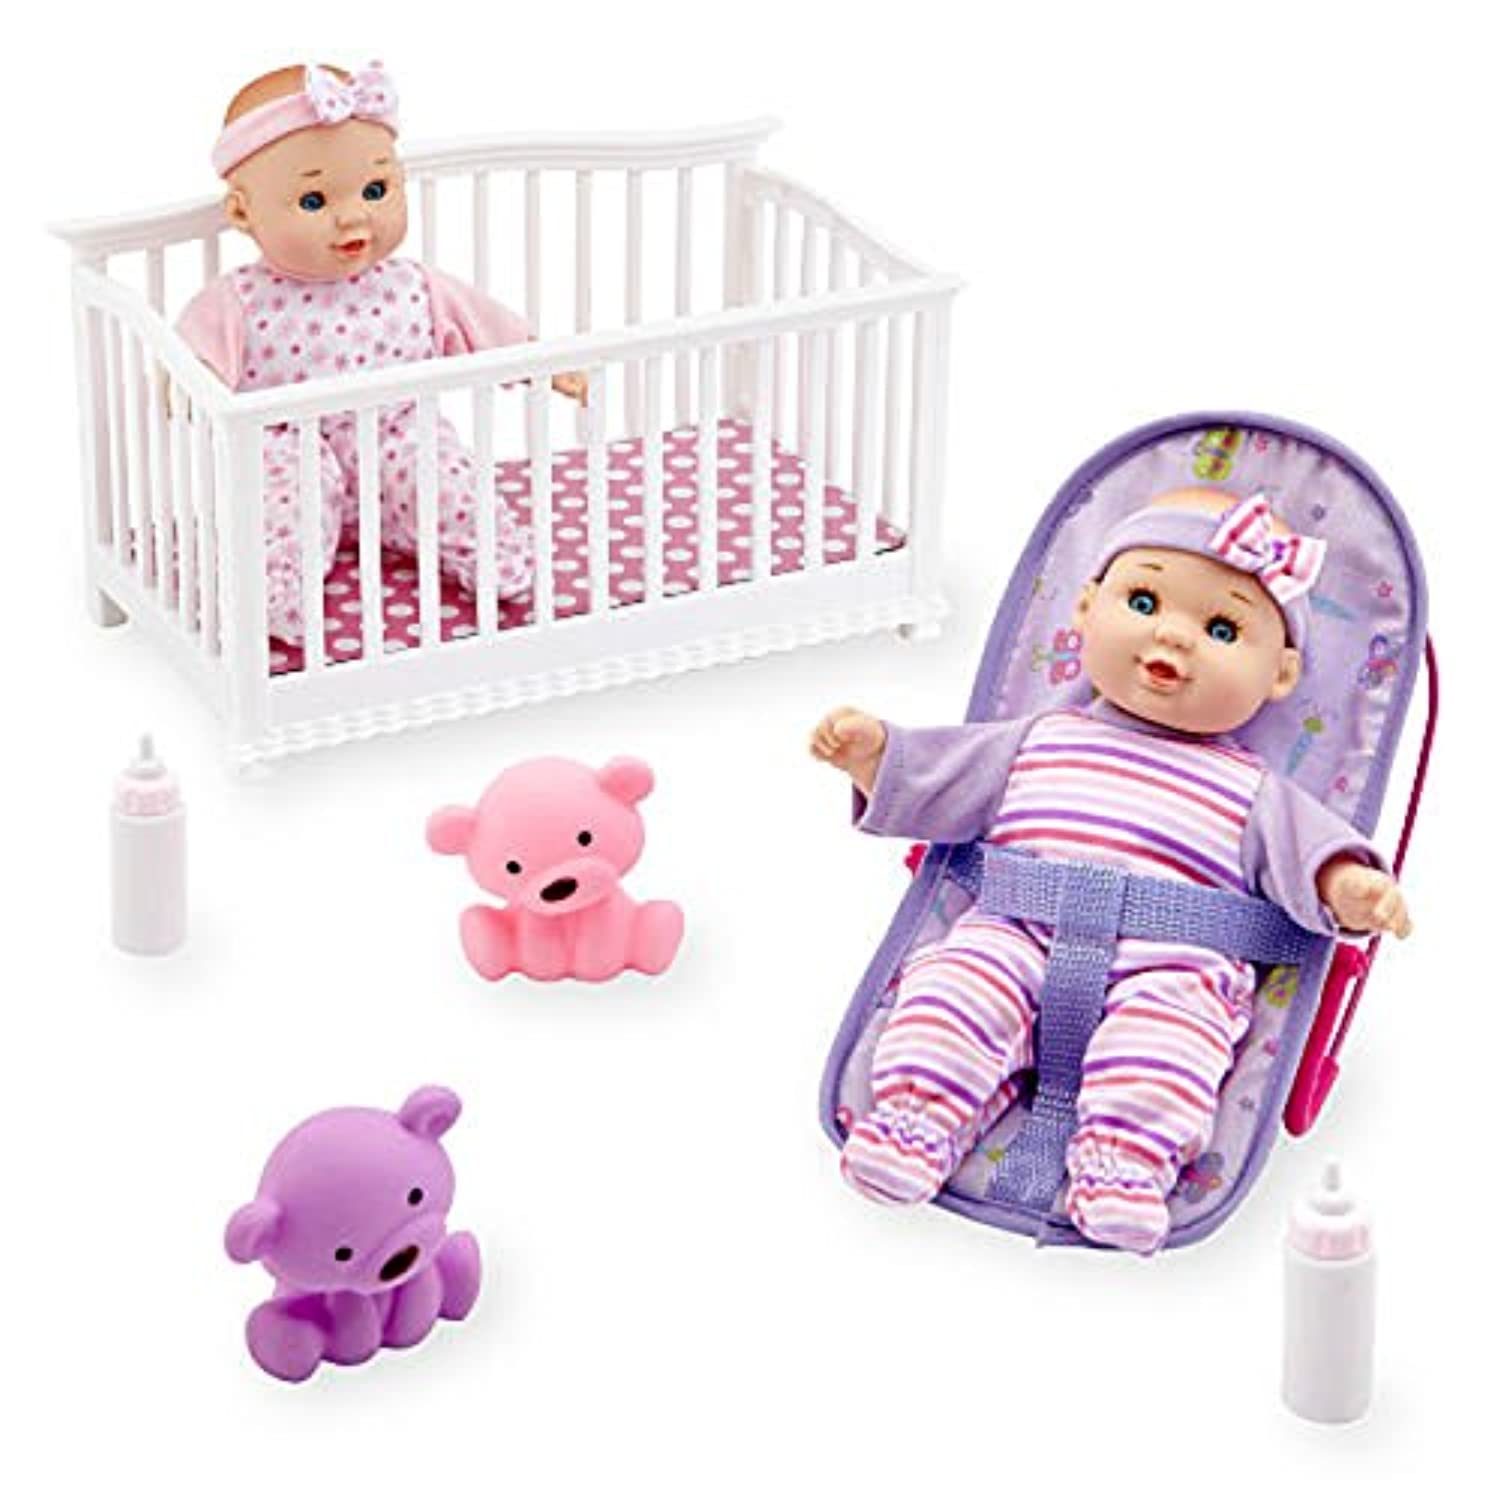 You & Me Mini Twins 8 inch Deluxe Baby Doll Set, Gift, Girl, Toys by You&Me